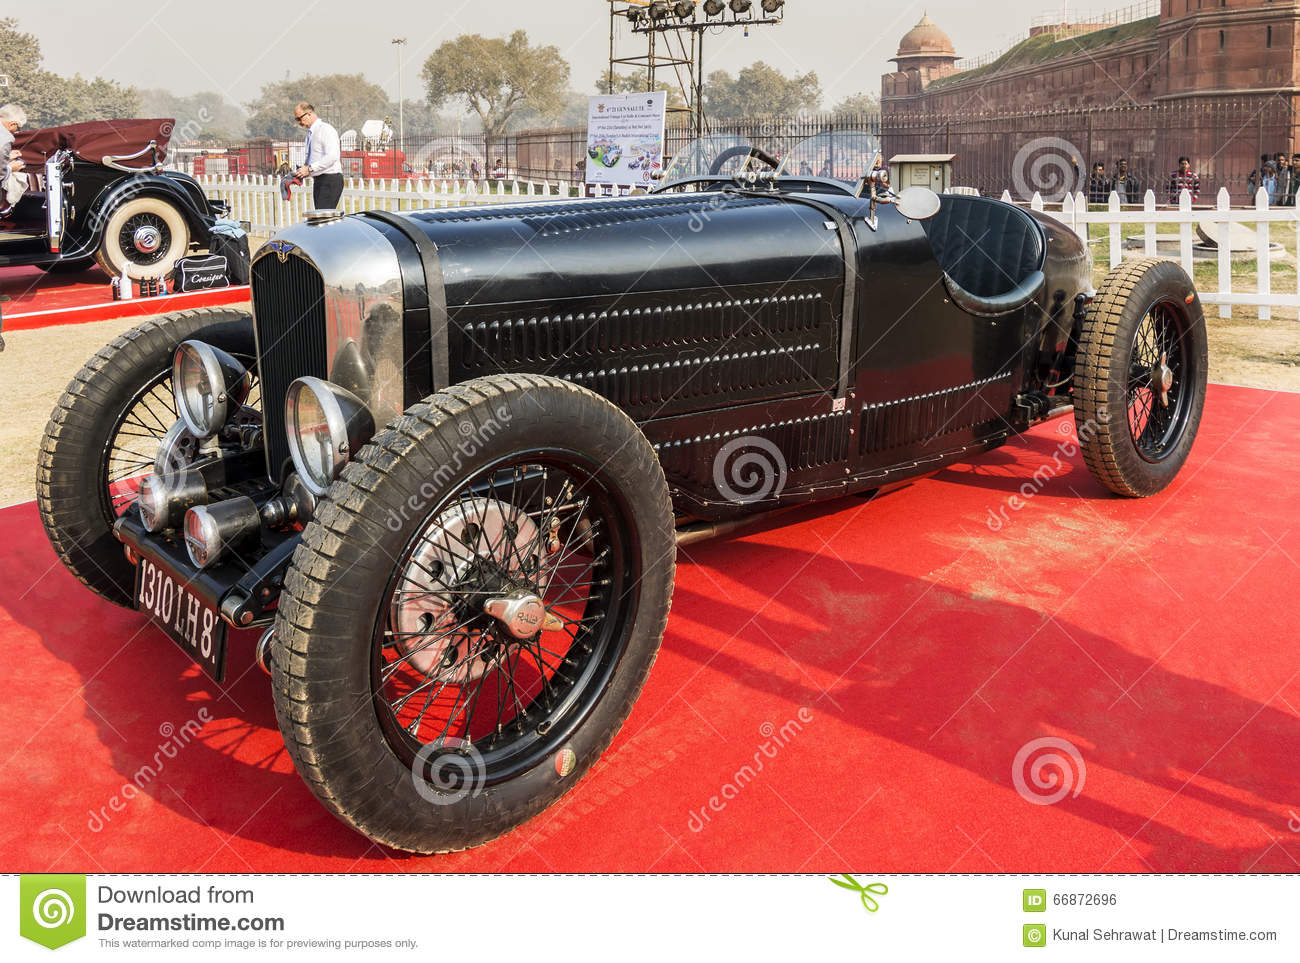 bugatti-vintage-retro-sports-car-display